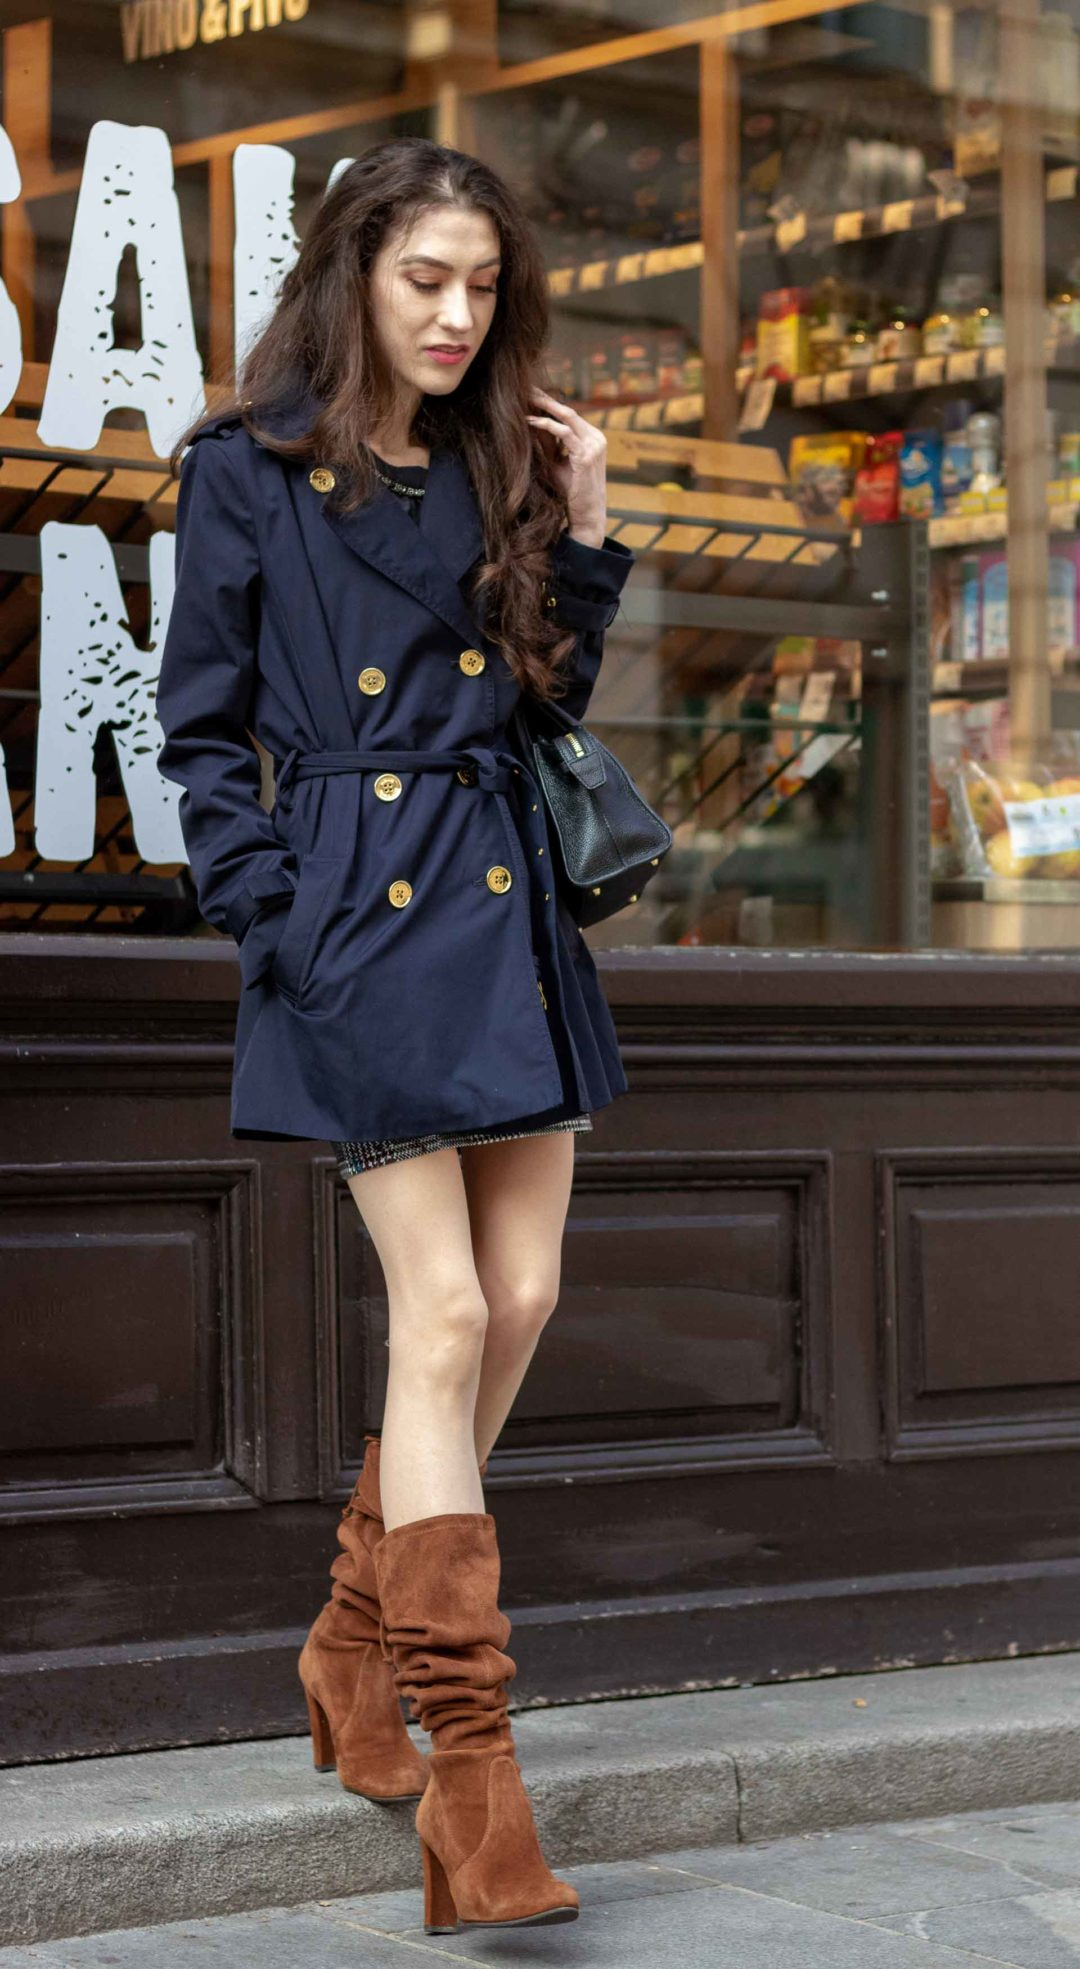 Beautiful Slovenian Fashion Blogger Veronika Lipar of Brunette from Wall wearing Stuart Weitzman brown slouchy boots, blue Michael Kors trench coat, black top handle bag while standing on the street